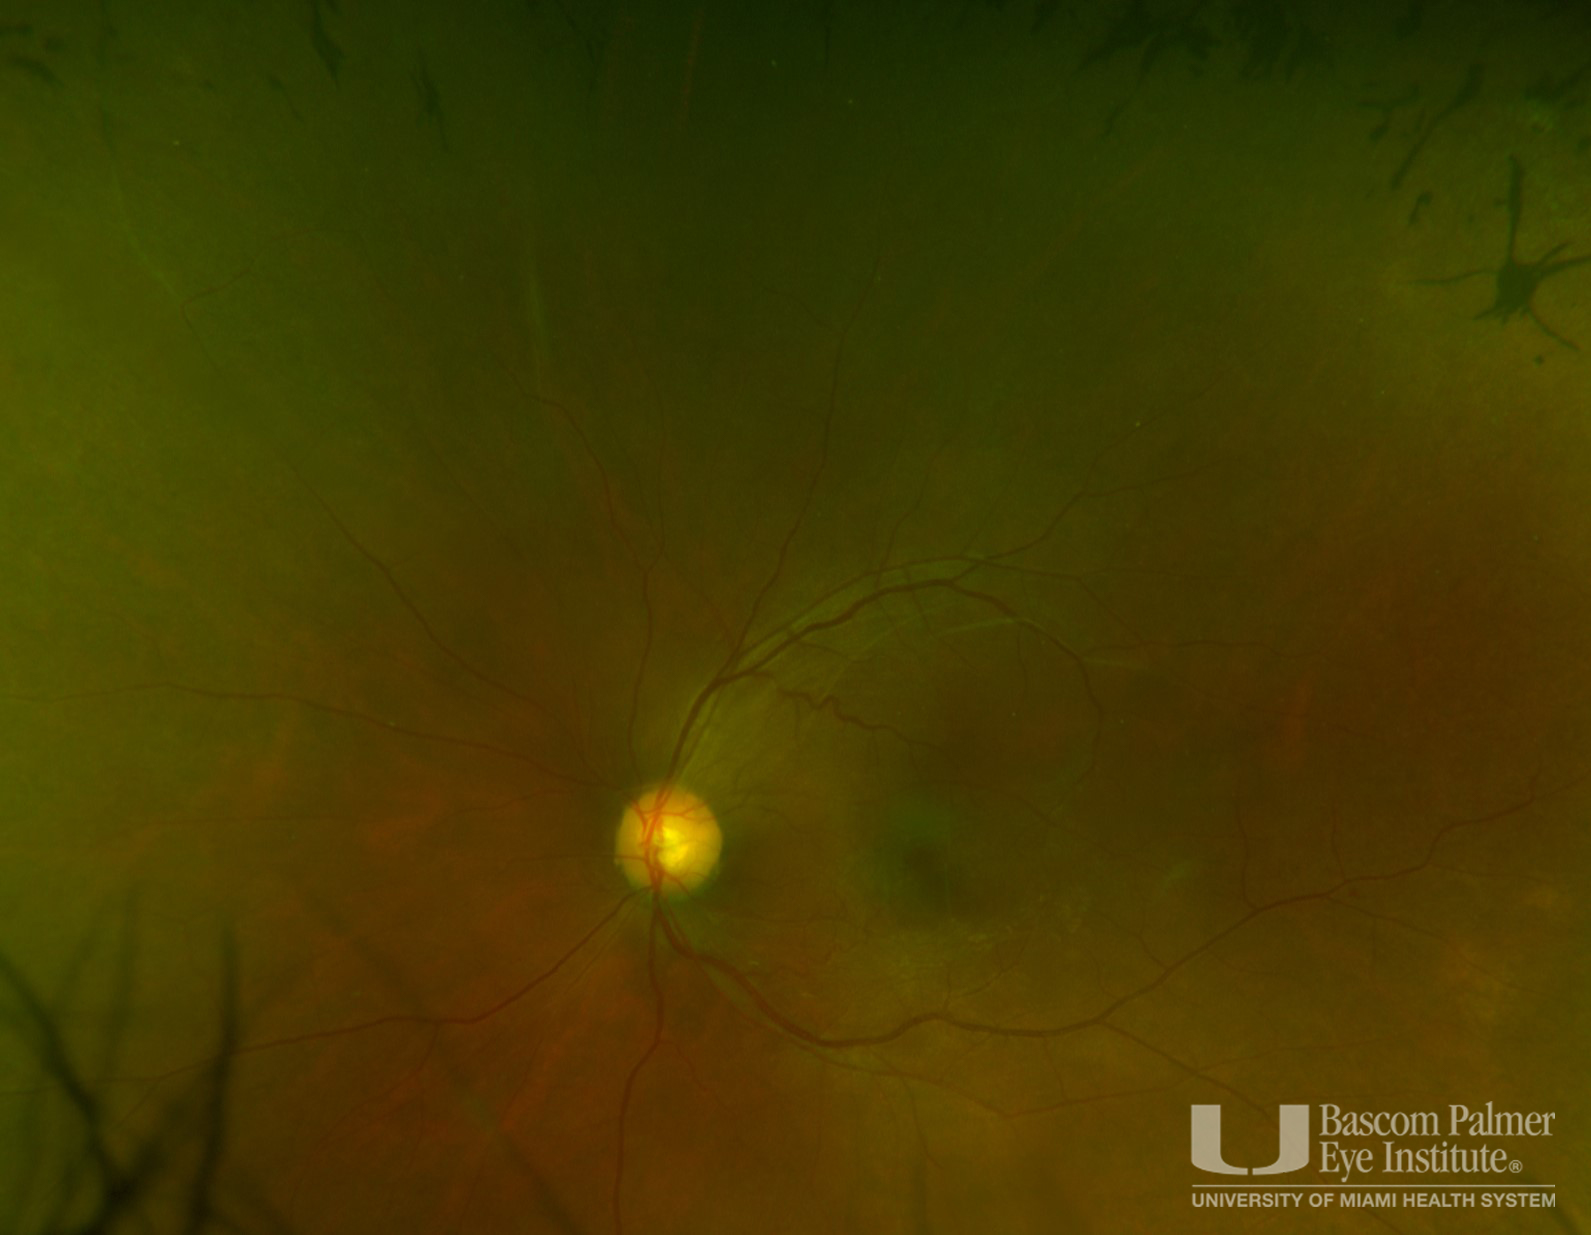 Fundus photo with peripheral hyperpigmentation and bone spicules.